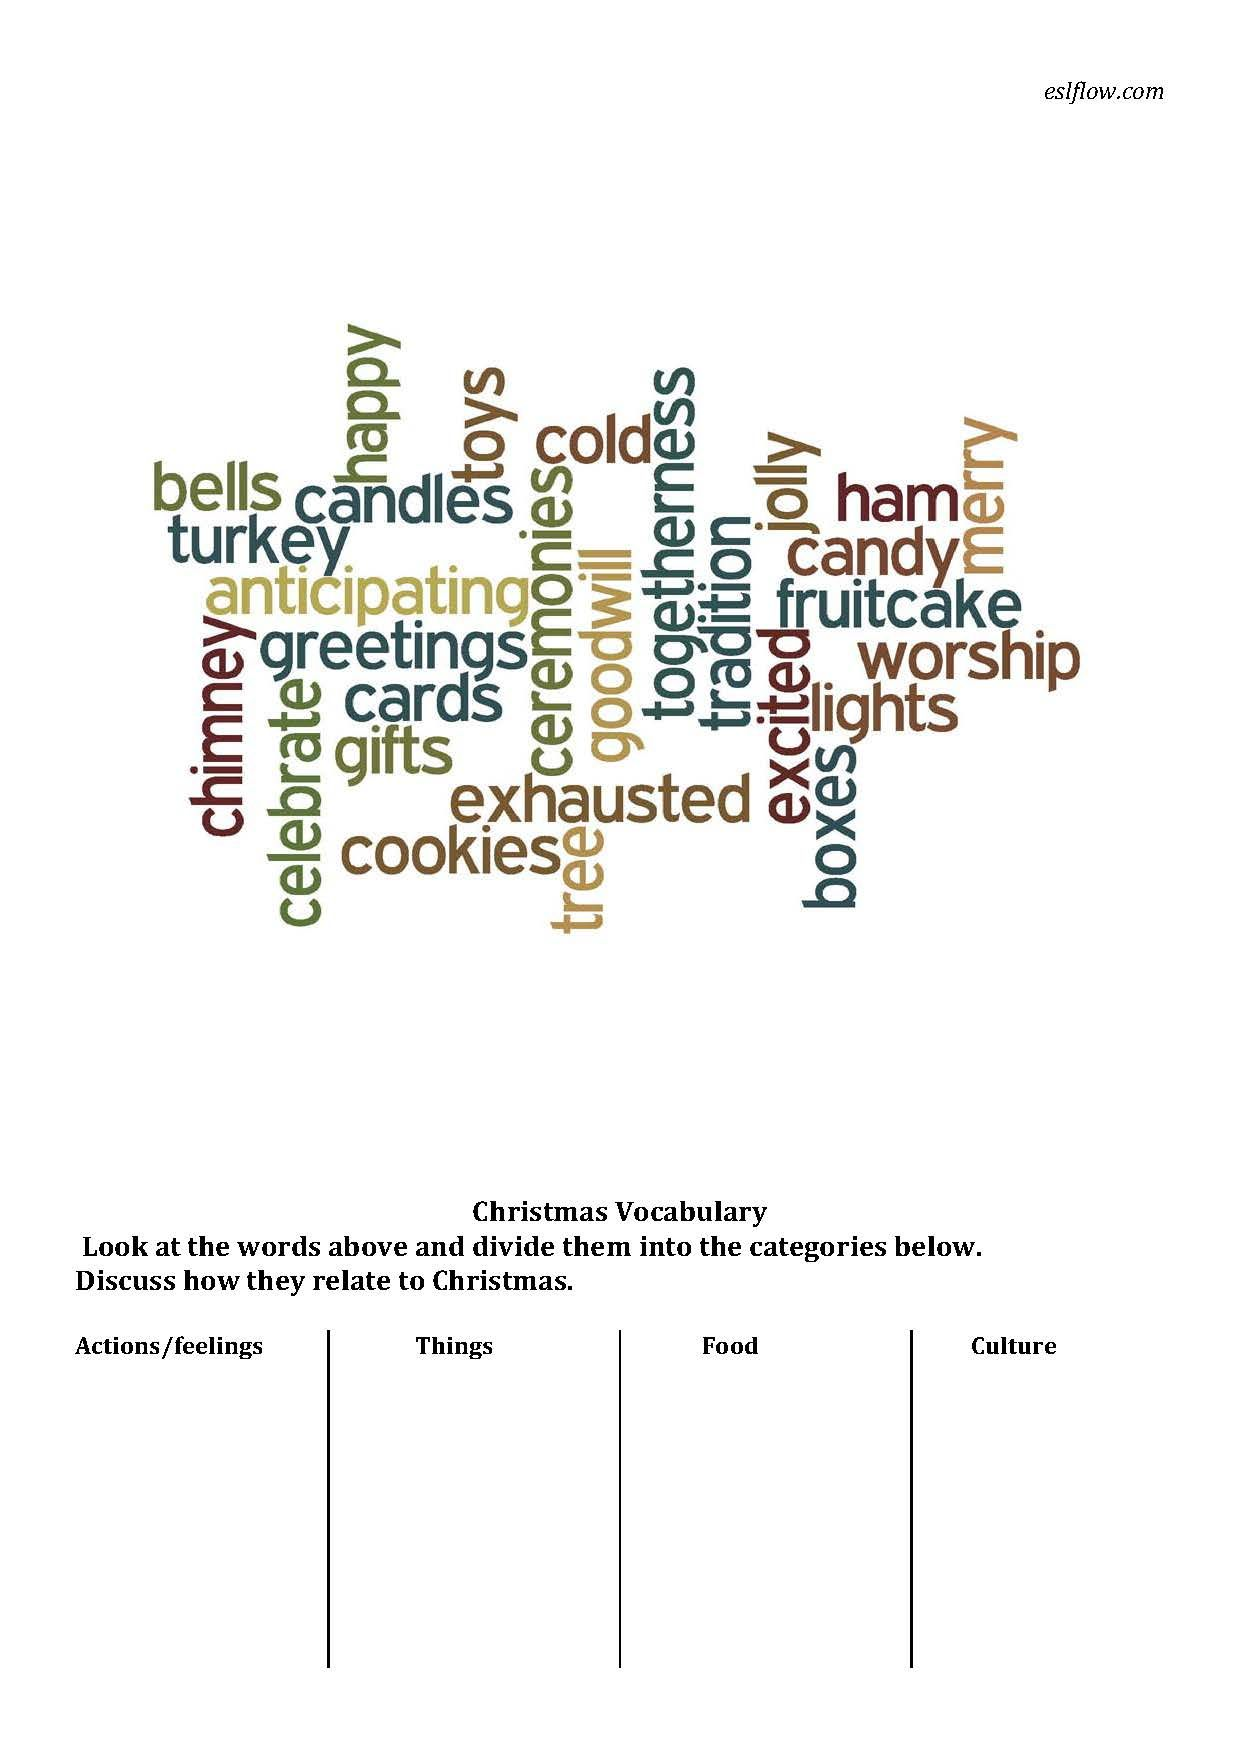 Christmas Vocabulary Sorting Worksheet